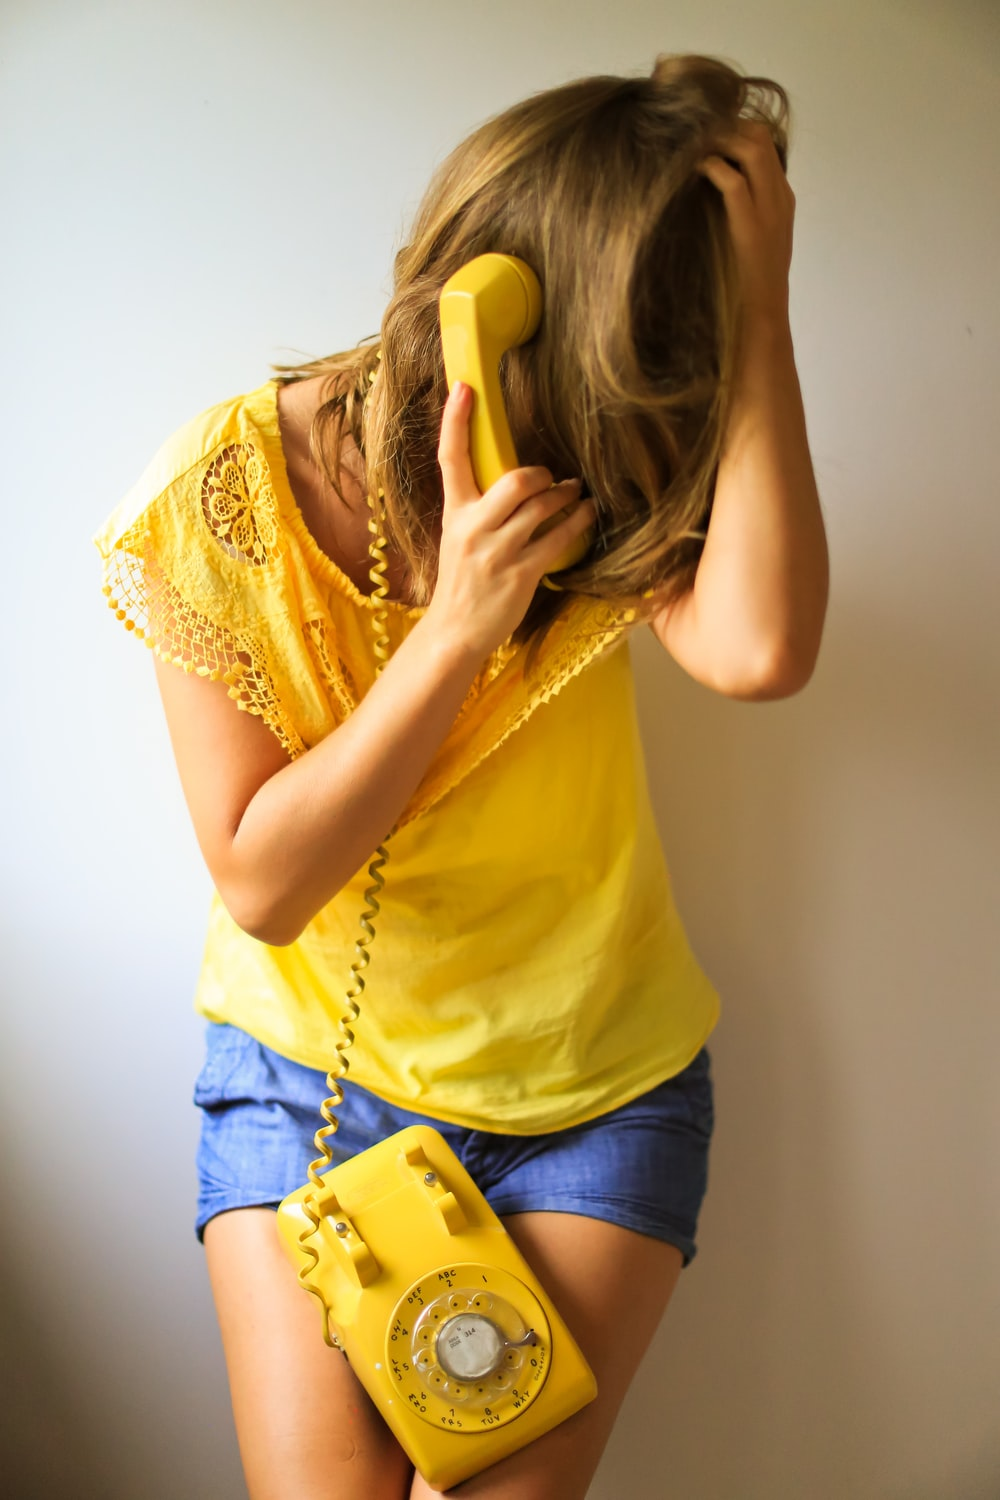 person in yellow T-shirt using rotary telephone